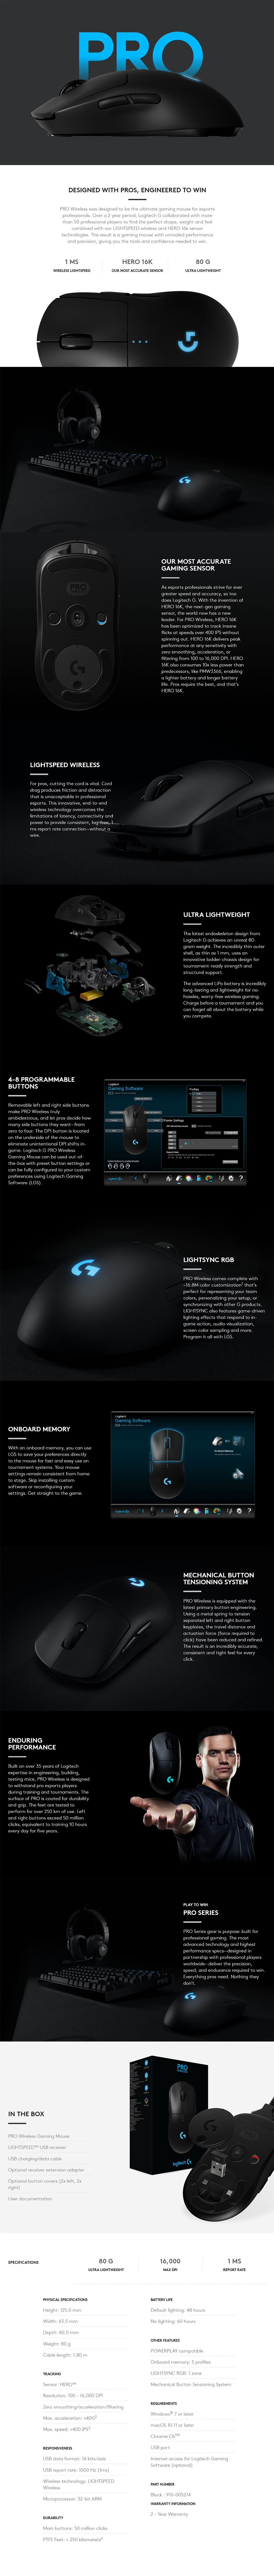 Logitech G Pro Lightspeed Wireless Gaming Mouse - Desktop Overview